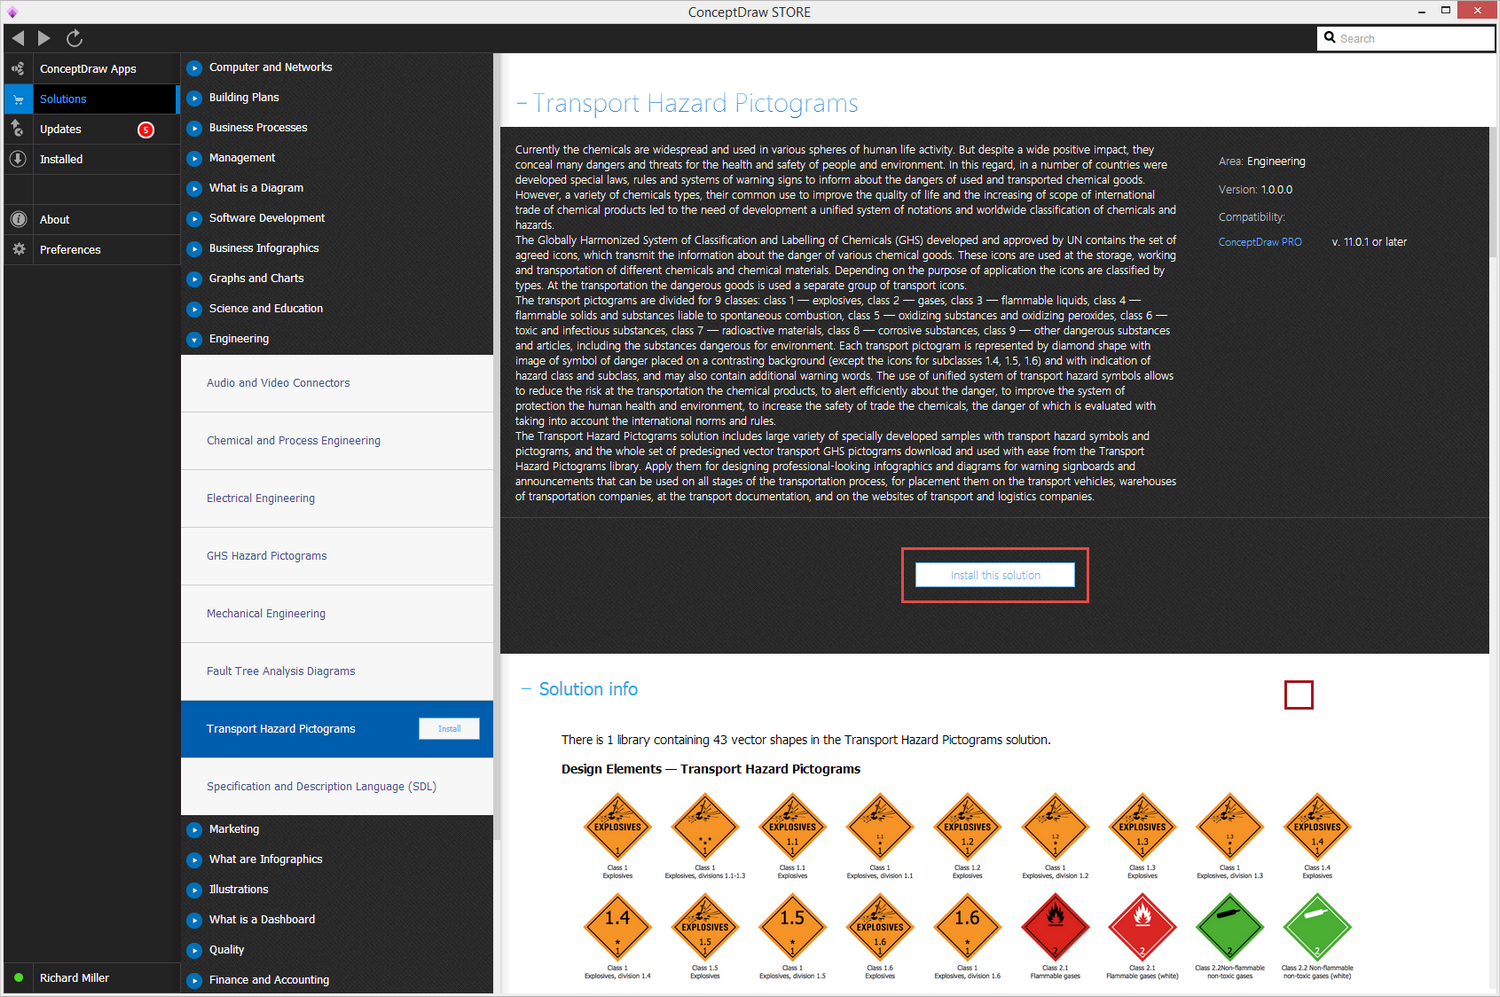 Transport Hazard Pictograms solution - Install